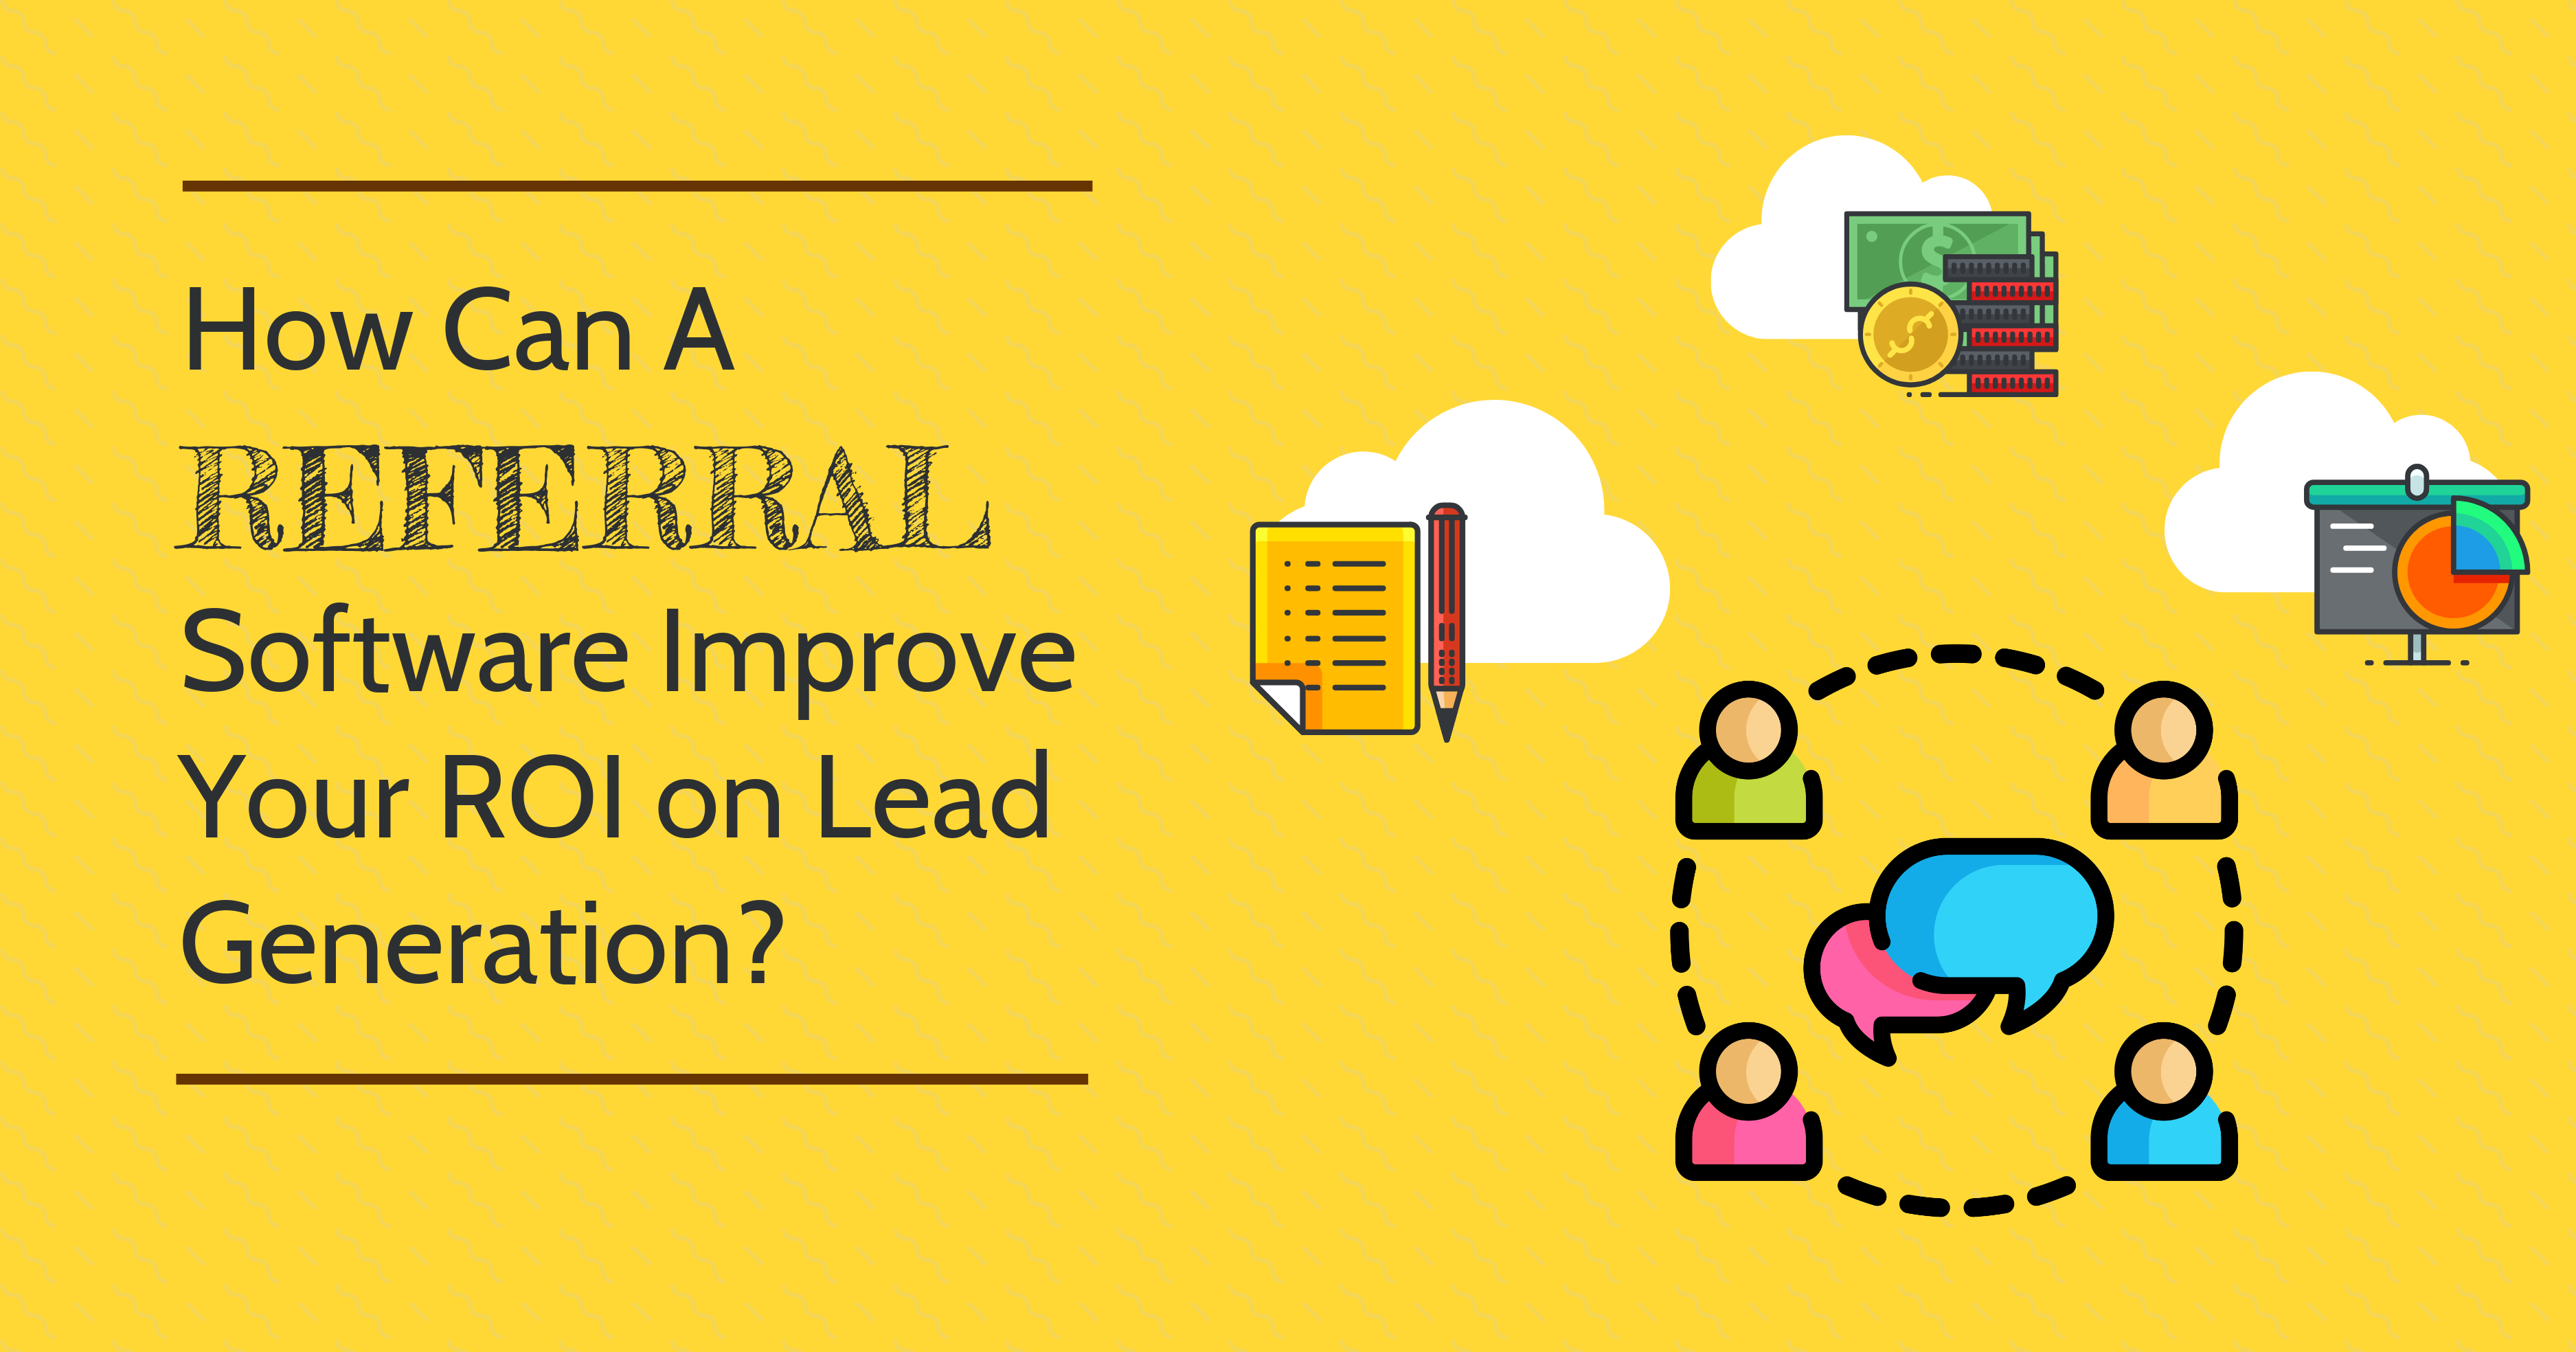 How Can a Referral Software Improve Your ROI on Lead Generation?